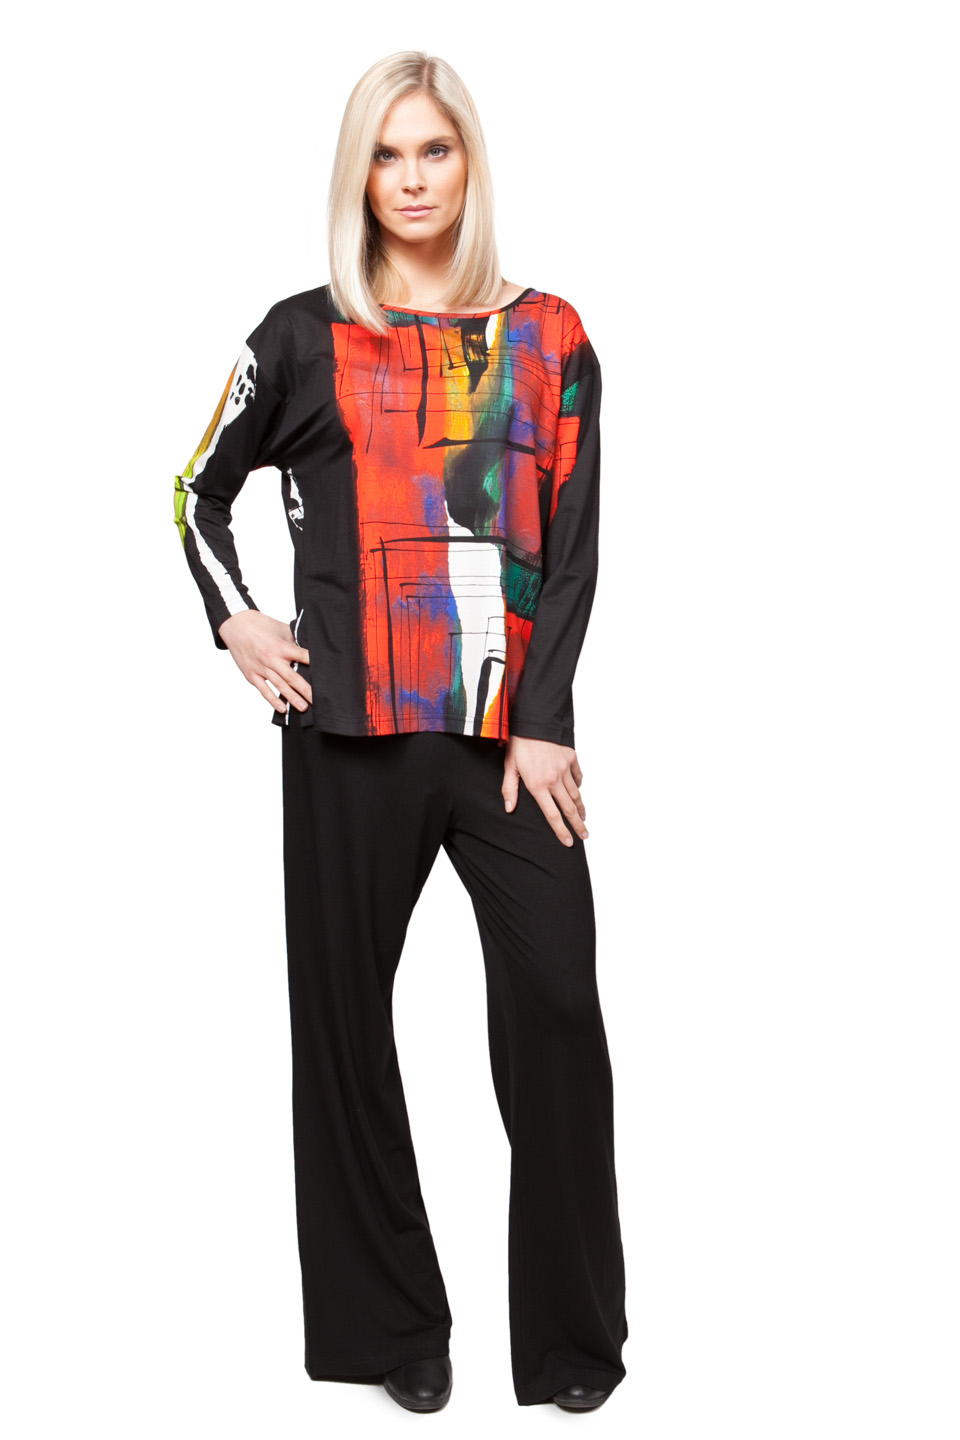 Copy of Style # 44173-16, p. 3<br>Viscose Prints Print: Waterfall Only<br>Solid Pant # 33076-16, p. 7